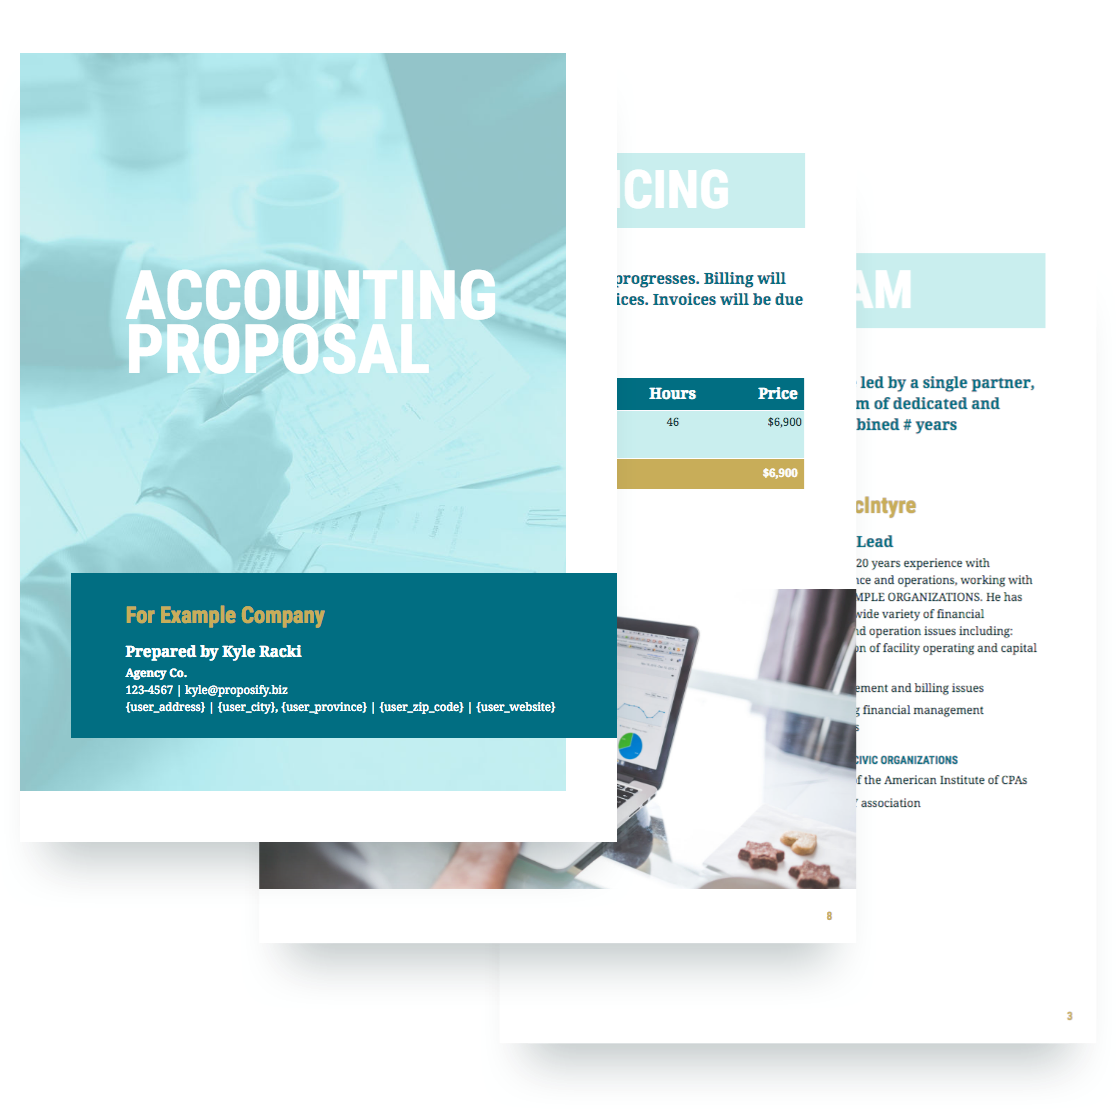 Accounting proposal template free sample for Proposal for bookkeeping services template